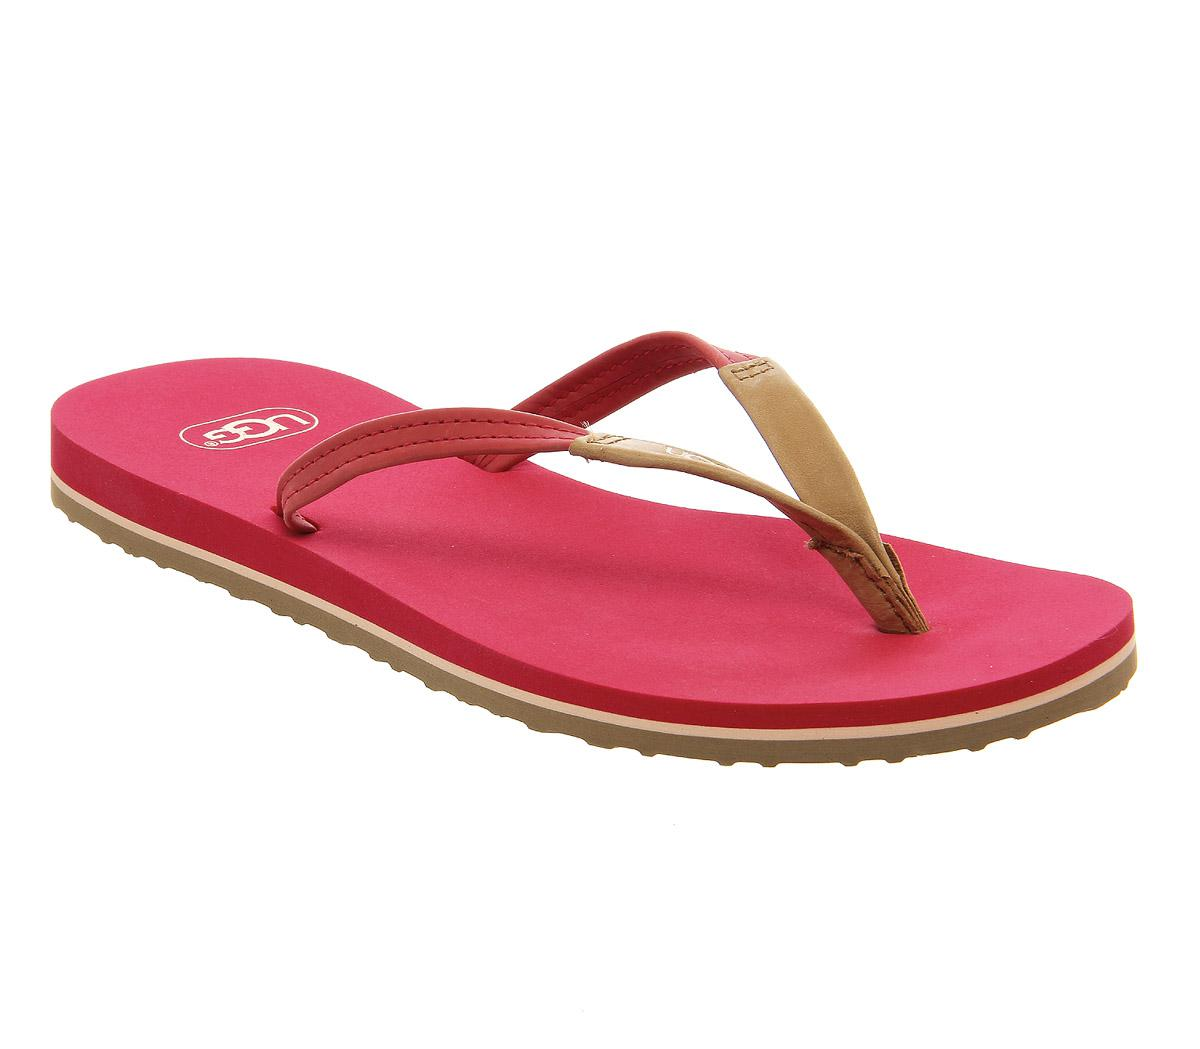 Ugg Leather Magnolia Flip Flop In Red - Lyst-1382